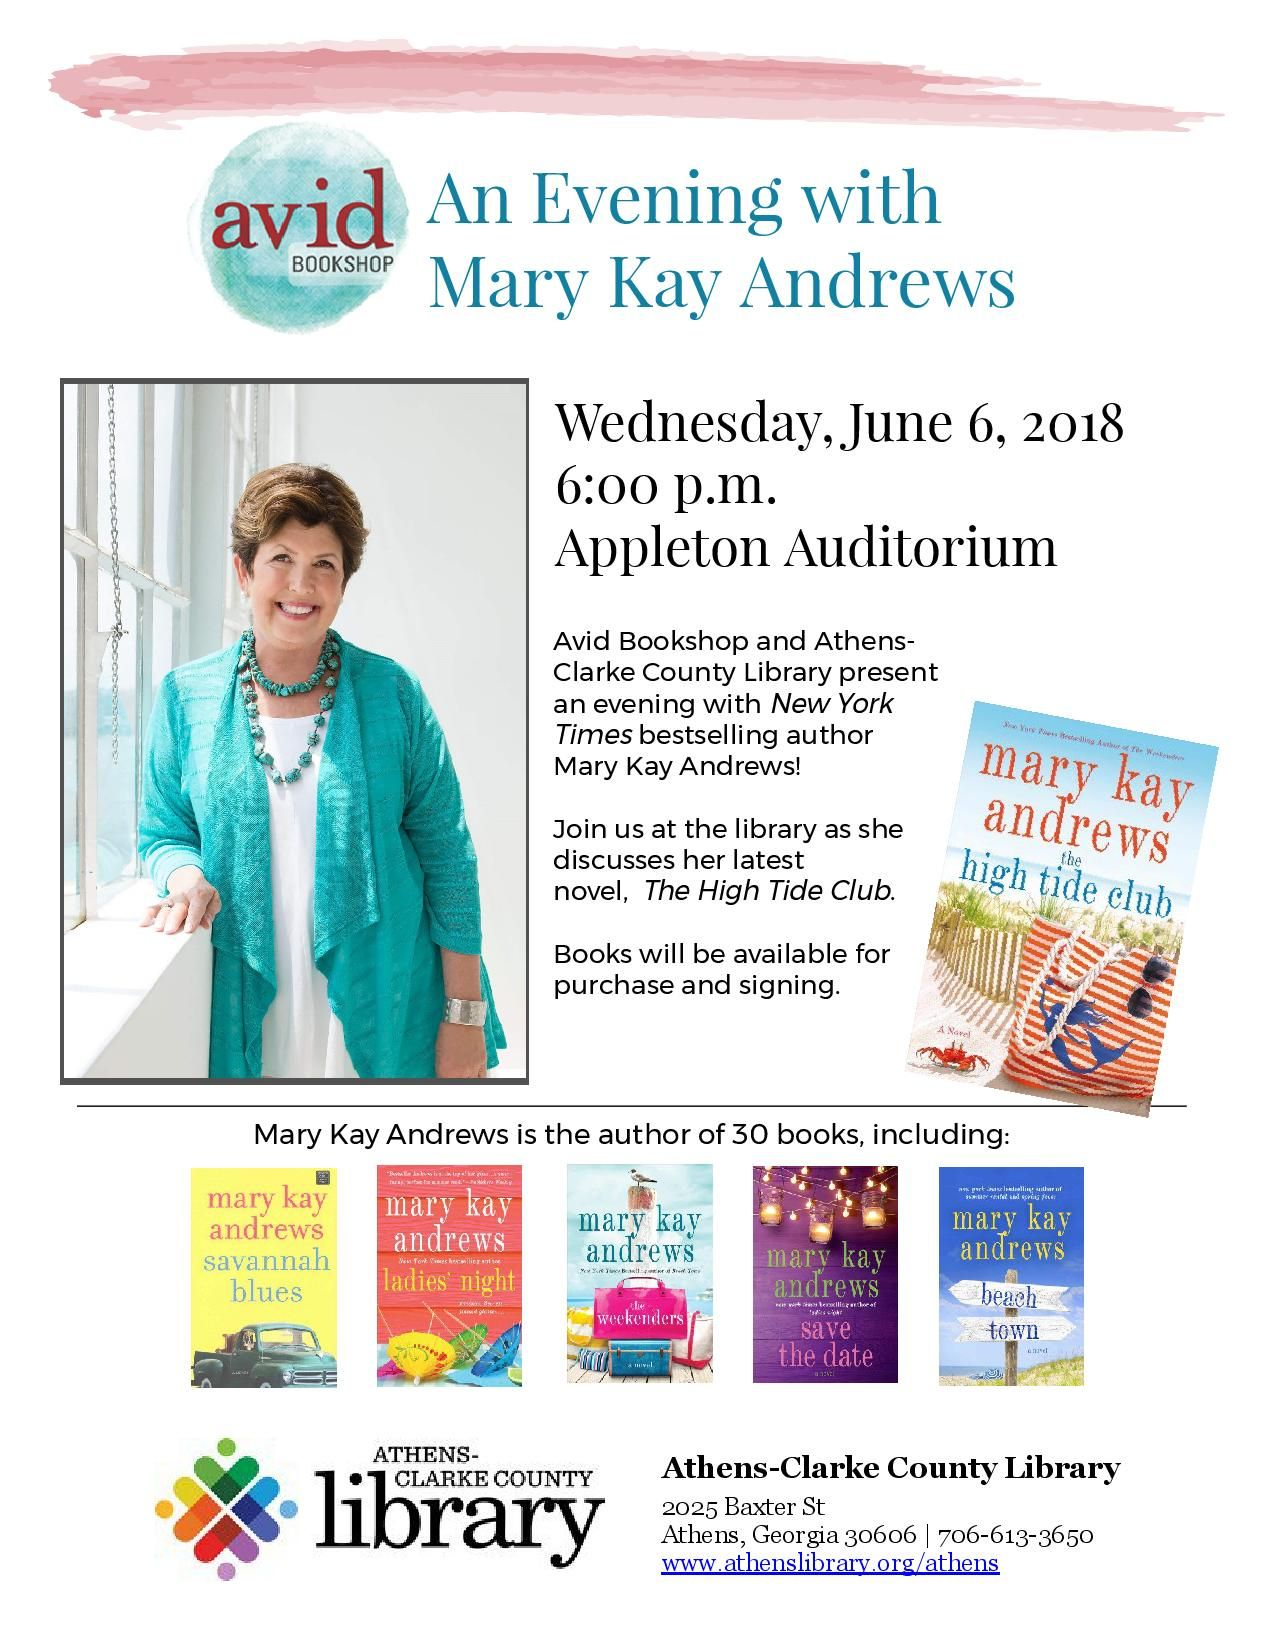 Author Mary Kay Andrews: THE HIGH TIDE CLUB